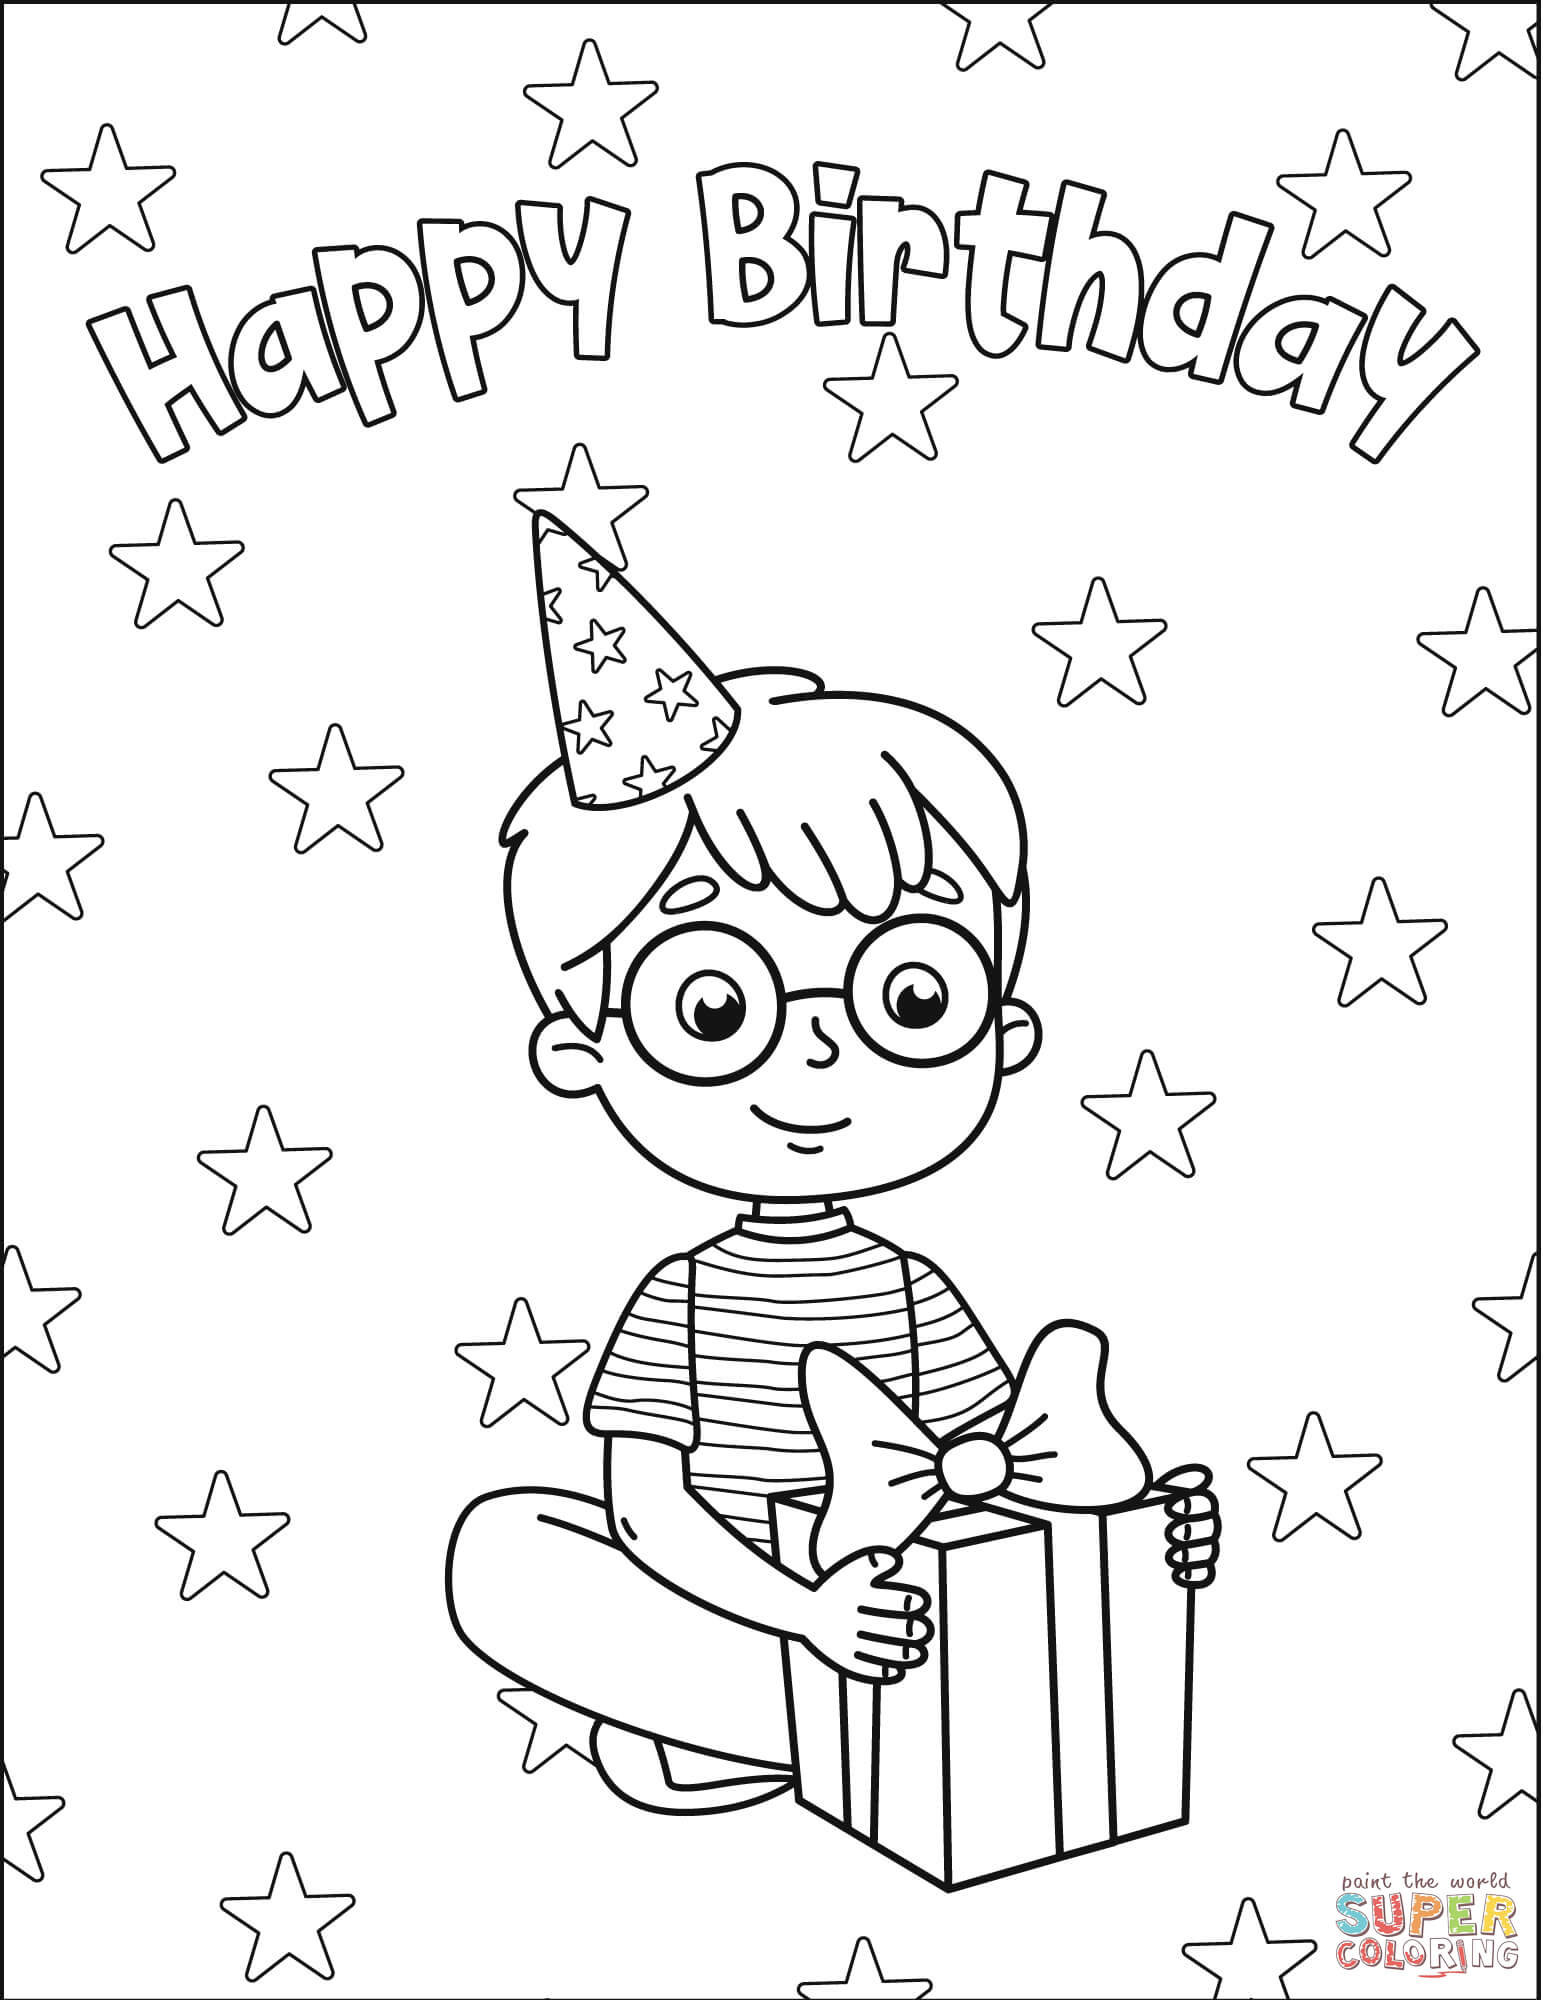 Happy Birthday with Boy coloring page | Free Printable Coloring Pages